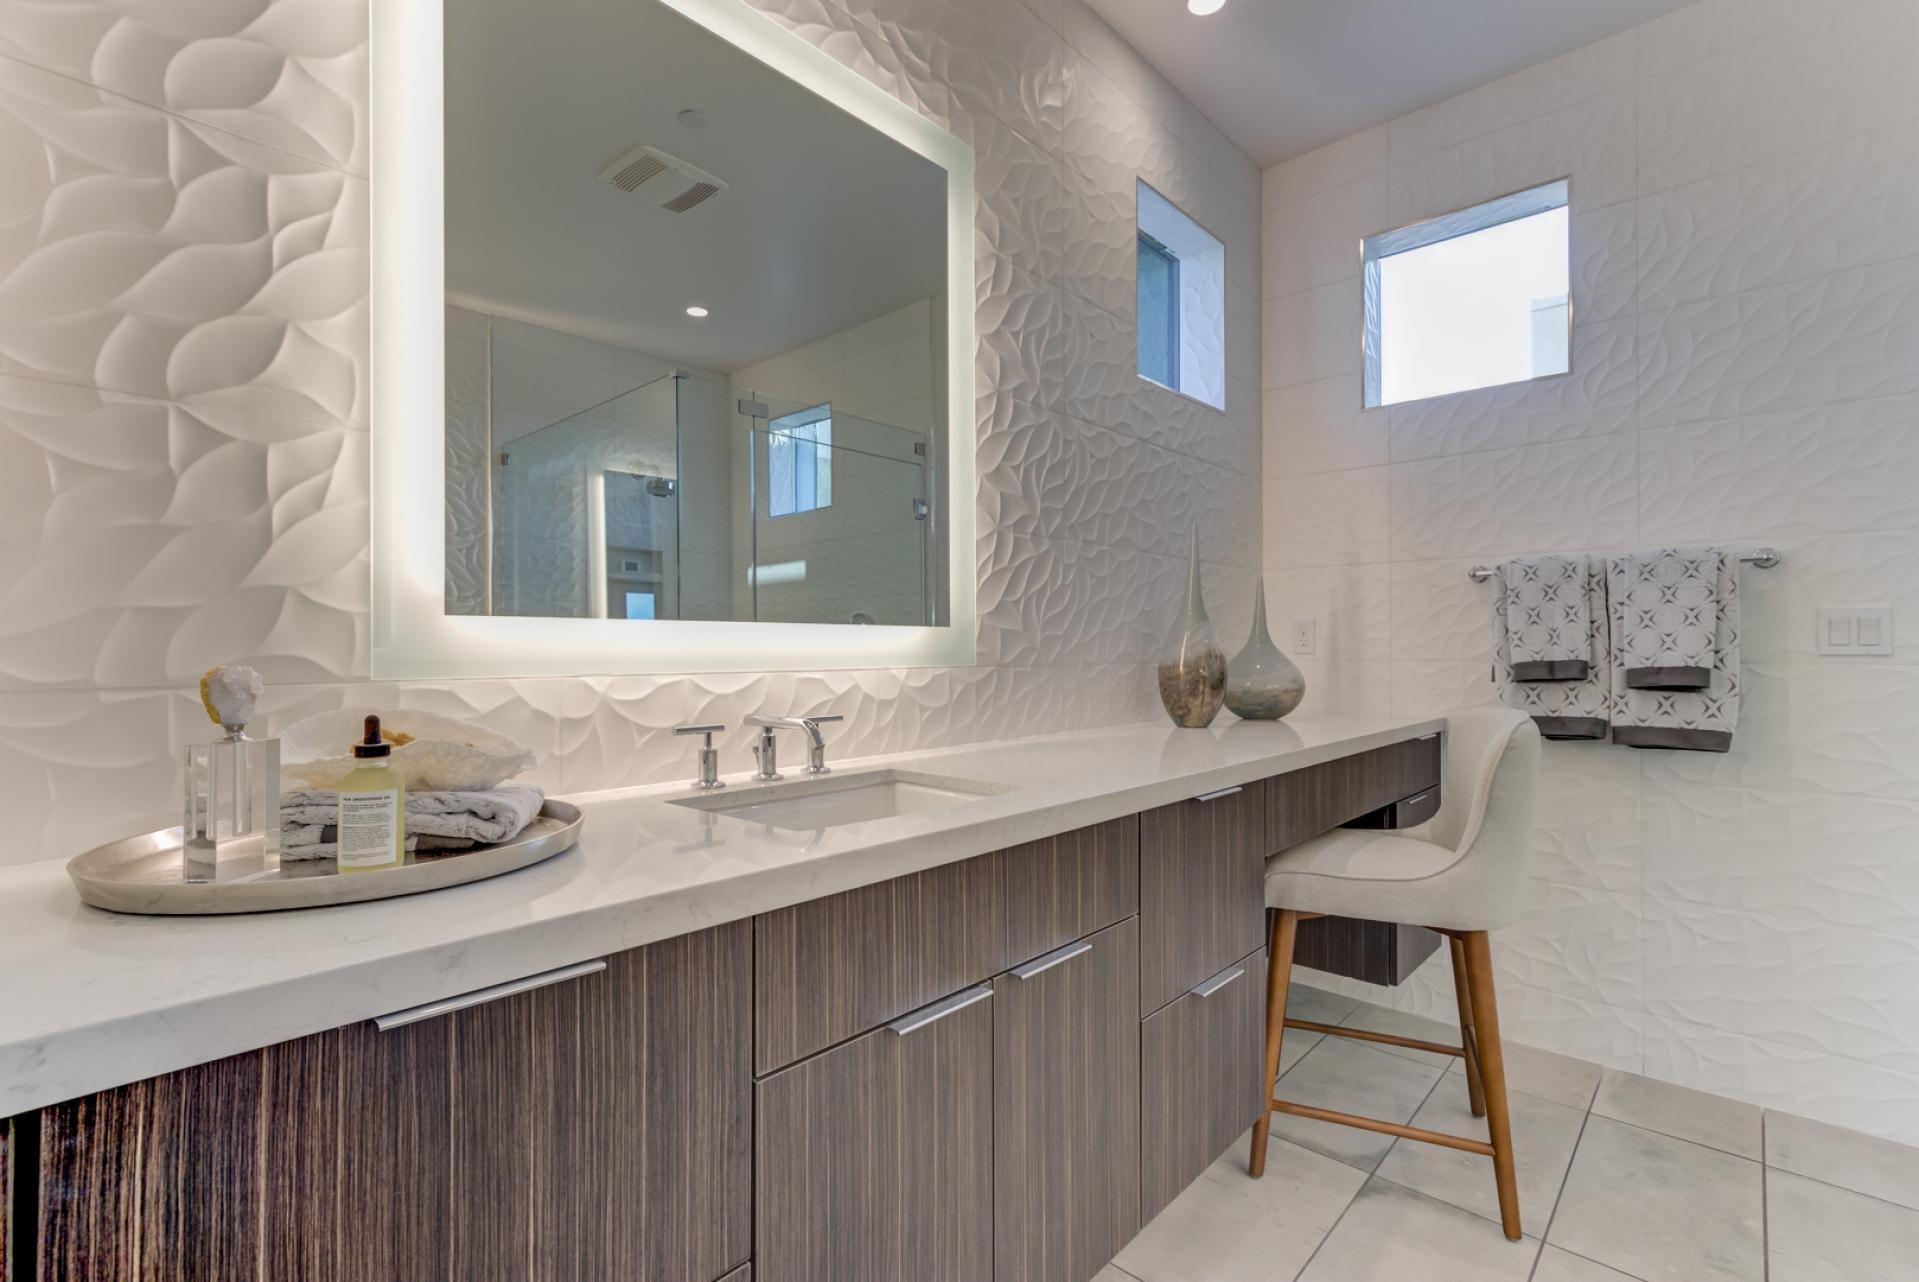 Bathroom featured in the E-States Plan 3 By SummerHill Homes in San Jose, CA